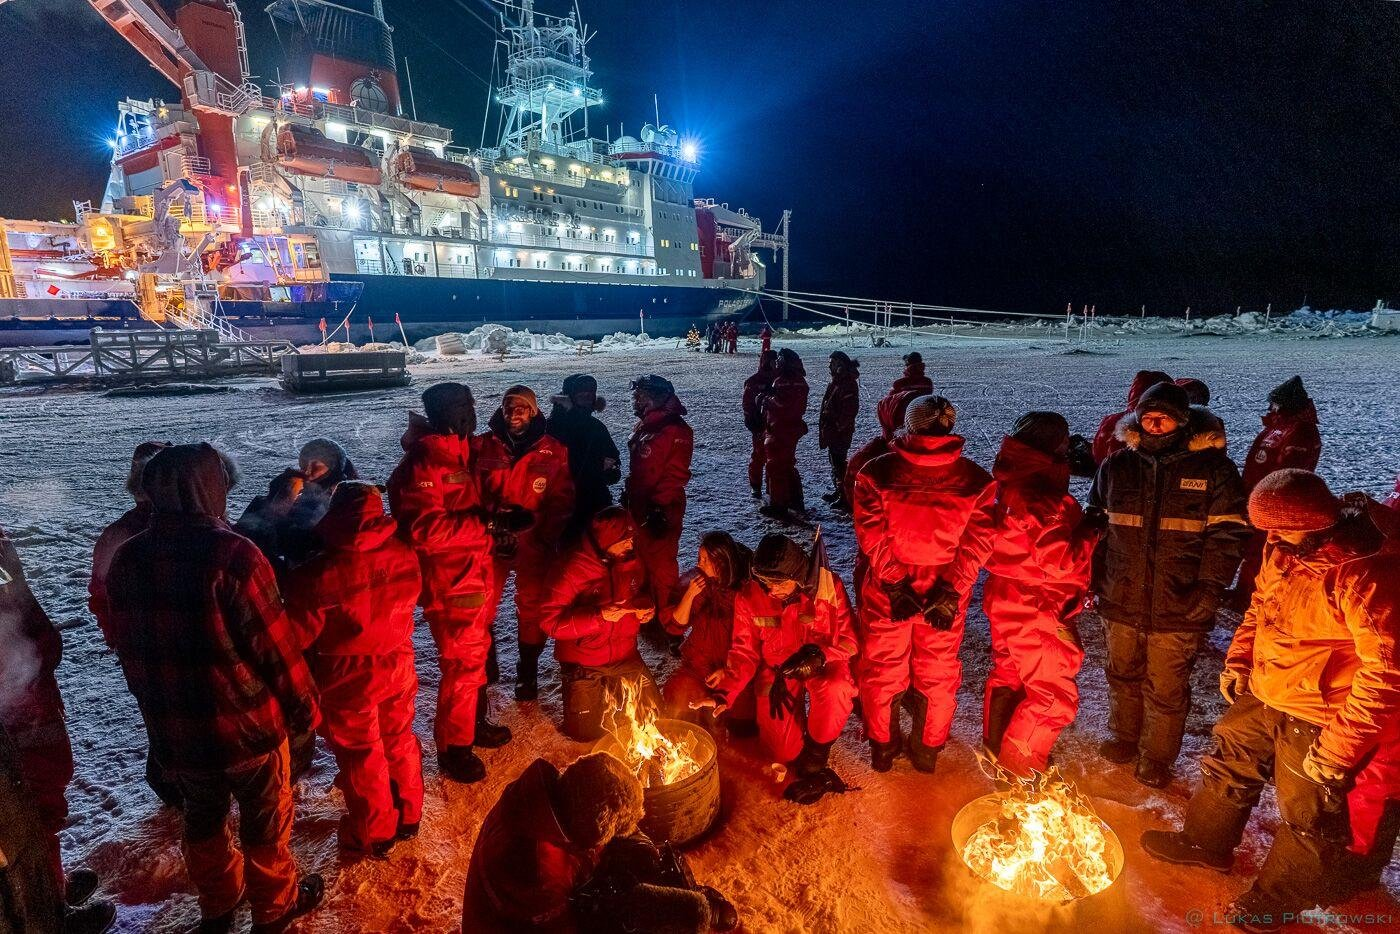 Researchers gathered around camp fire. Polarstern is seen in the background.